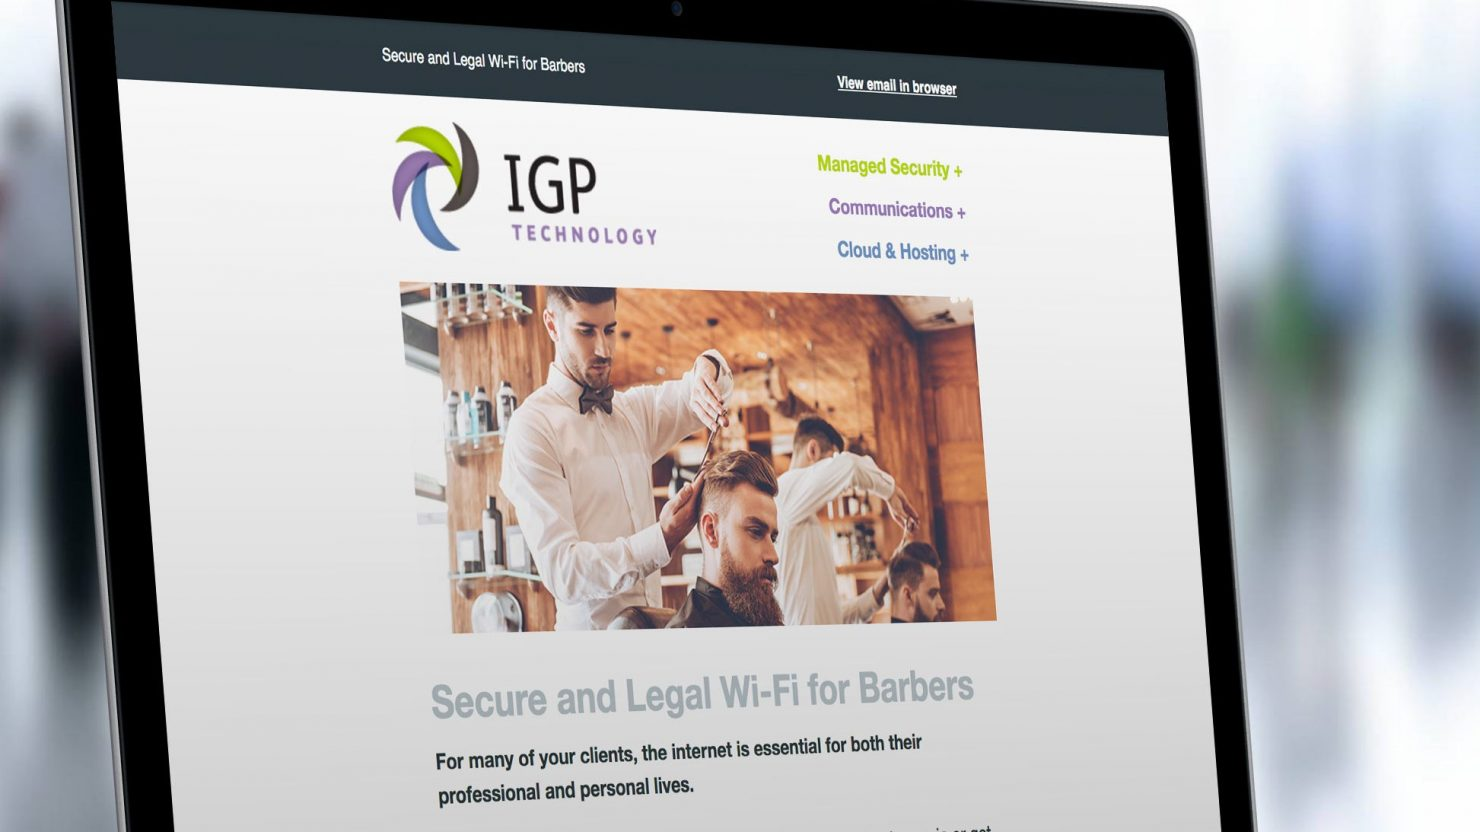 creative email marketing for IGP technology birmingham